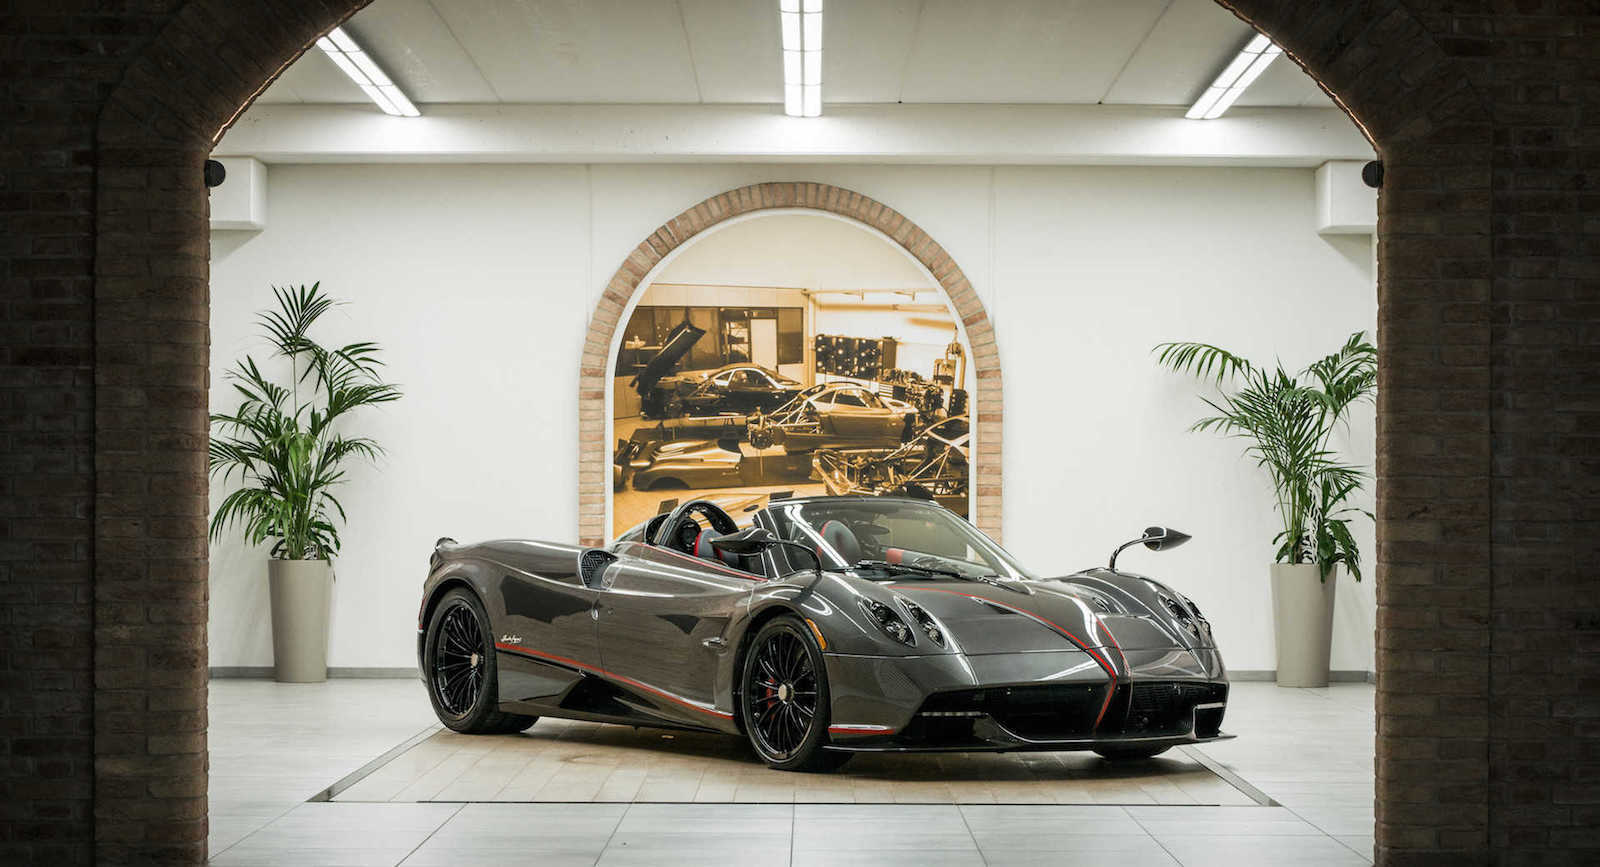 Photo of Σπέσιαλ οροφή για από την Dainese για την Pagani Huayra Roadster